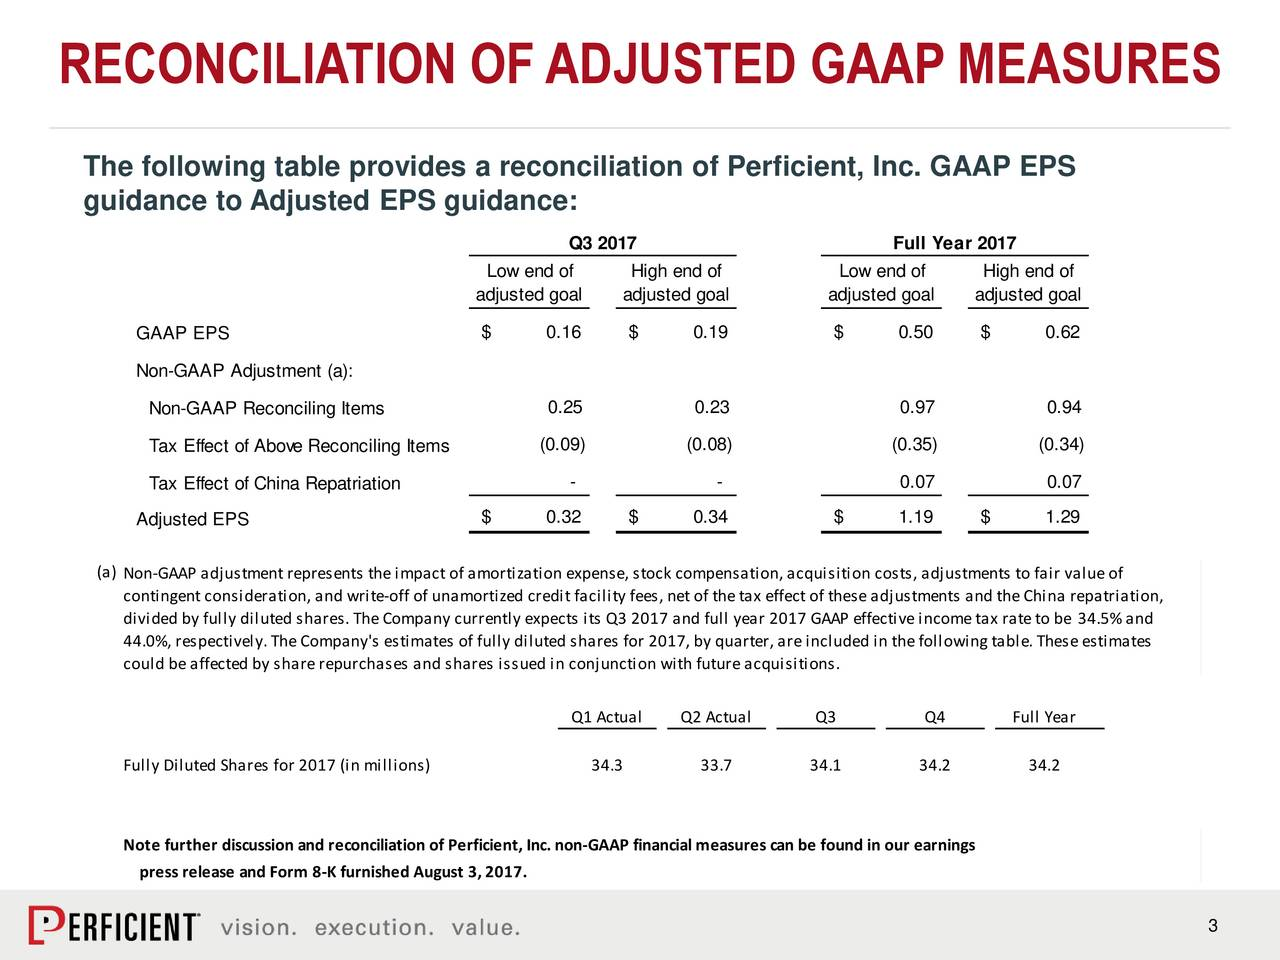 The following table provides a reconciliation of Perficient, Inc. GAAP EPS guidance to Adjusted EPS guidance: Q3 2017 Full Year 2017 Low end of High end of Low end of High end of adjusted goal adjusted goal adjusted goal adjusted goal GAAP EPS $ 0.16 $ 0.19 $ 0.50 $ 0.62 Non-GAAP Adjustment (a): Non-GAAP Reconciling Items 0.25 0.23 0.97 0.94 Tax Effect of Above Reconciling Items (0.09) (0.08) (0.35) (0.34) Tax Effect of China Repatriation - - 0.07 0.07 Adjusted EPS $ 0.32 $ 0.34 $ 1.19 $ 1.29 (a) Non-GAAP adjustment represents the impact of amortization expense, stock compensation, acquisition costs, adjustments to fair value of contingent consideration, and write-off of unamortized credit facility fees, net of the tax effect of these adjustments and the China repatriation, divided by fully diluted shares. The Company currently expects its Q3 2017 and full year 2017 GAAP effective income tax rate to be 34.5% and 44.0%, respectively. The Company's estimates of fully diluted shares for 2017, by quarter, are included in the following table. These estimates could be affected by share repurchases and shares issued in conjunction with future acquisitions. Q1 Actual Q2 Actual Q3 Q4 Full Year Fully Diluted Shares for 2017 (in millions) 34.3 33.7 34.1 34.2 34.2 Note further discussion and reconciliation of Perficient, Inc. non-GAAP financial measures can be found in our earnings press release and Form 8-K furnished August 3, 2017. 3